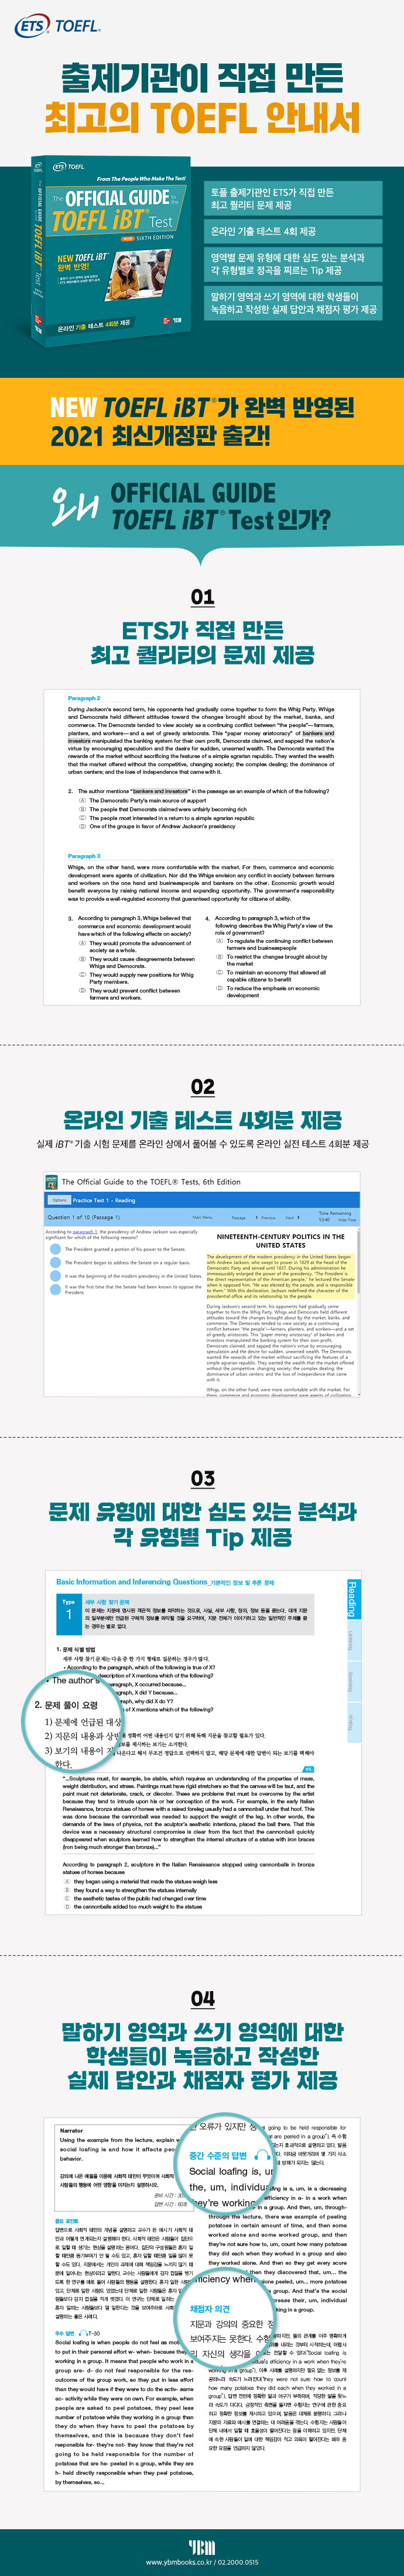 The Official Guide to the TOEFL iBT Test(6판) 도서 상세이미지